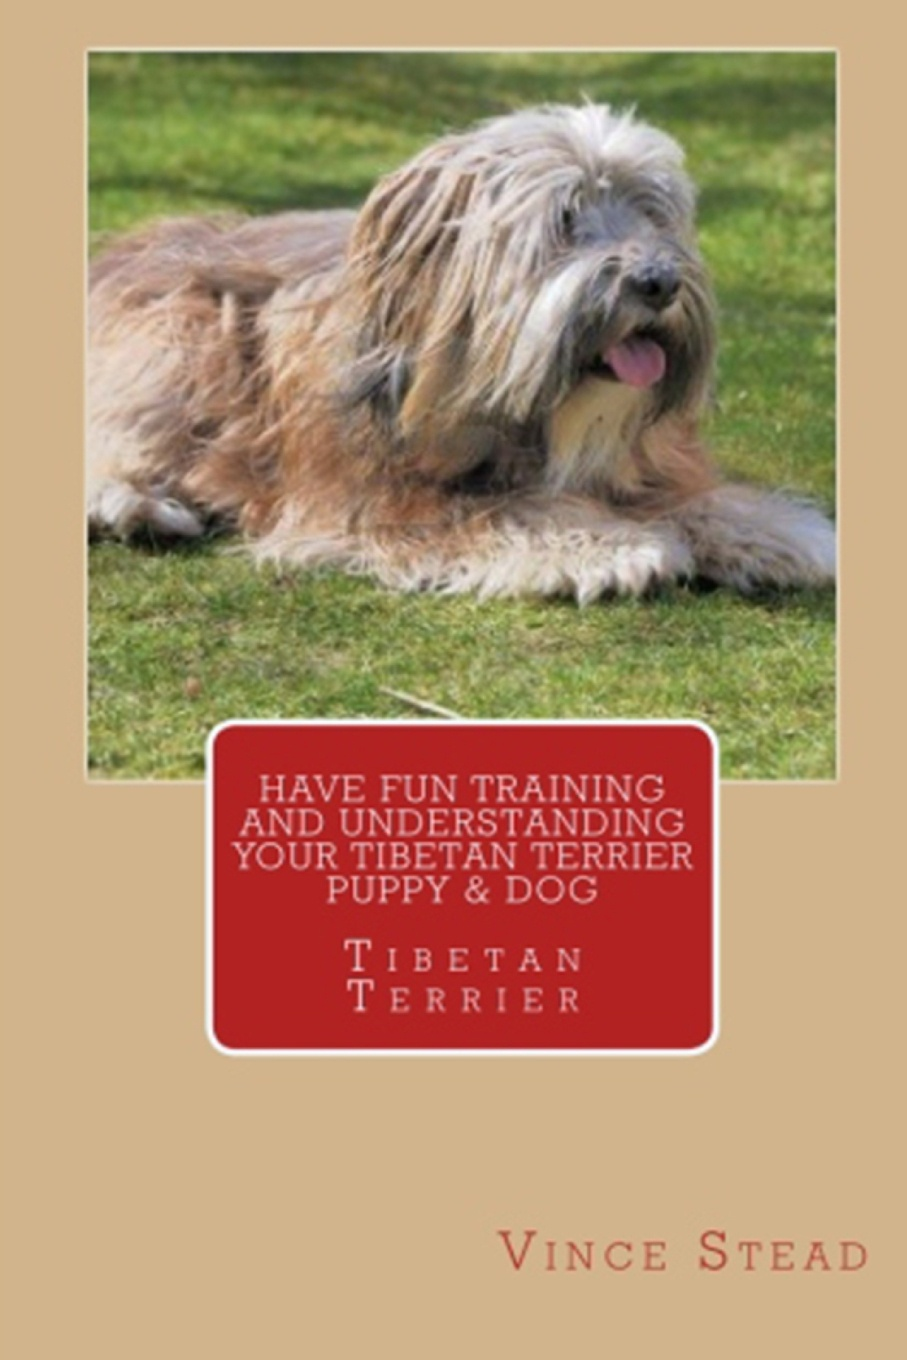 Vince Stead Have Fun Training and Understanding Your Tibetan Terrier Puppy & Dog